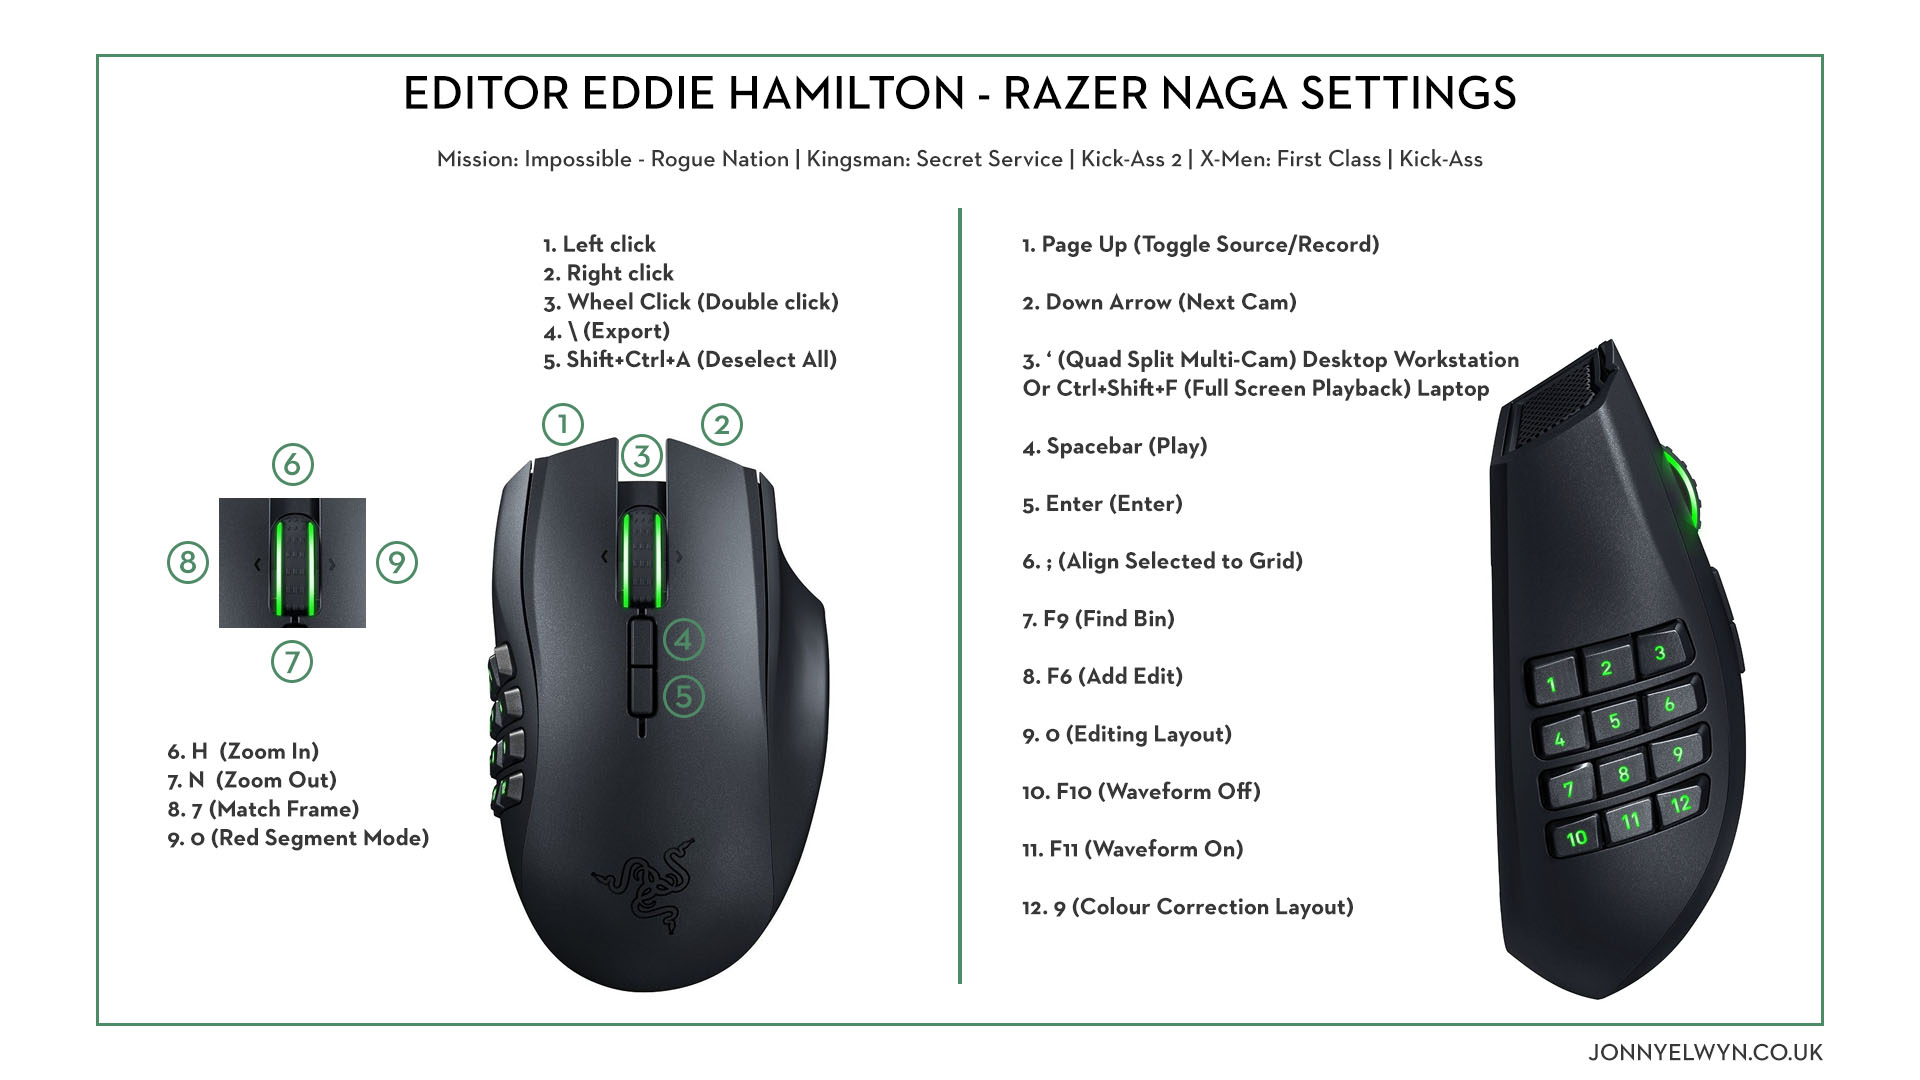 Razer Gaming Mouse for Film Editing